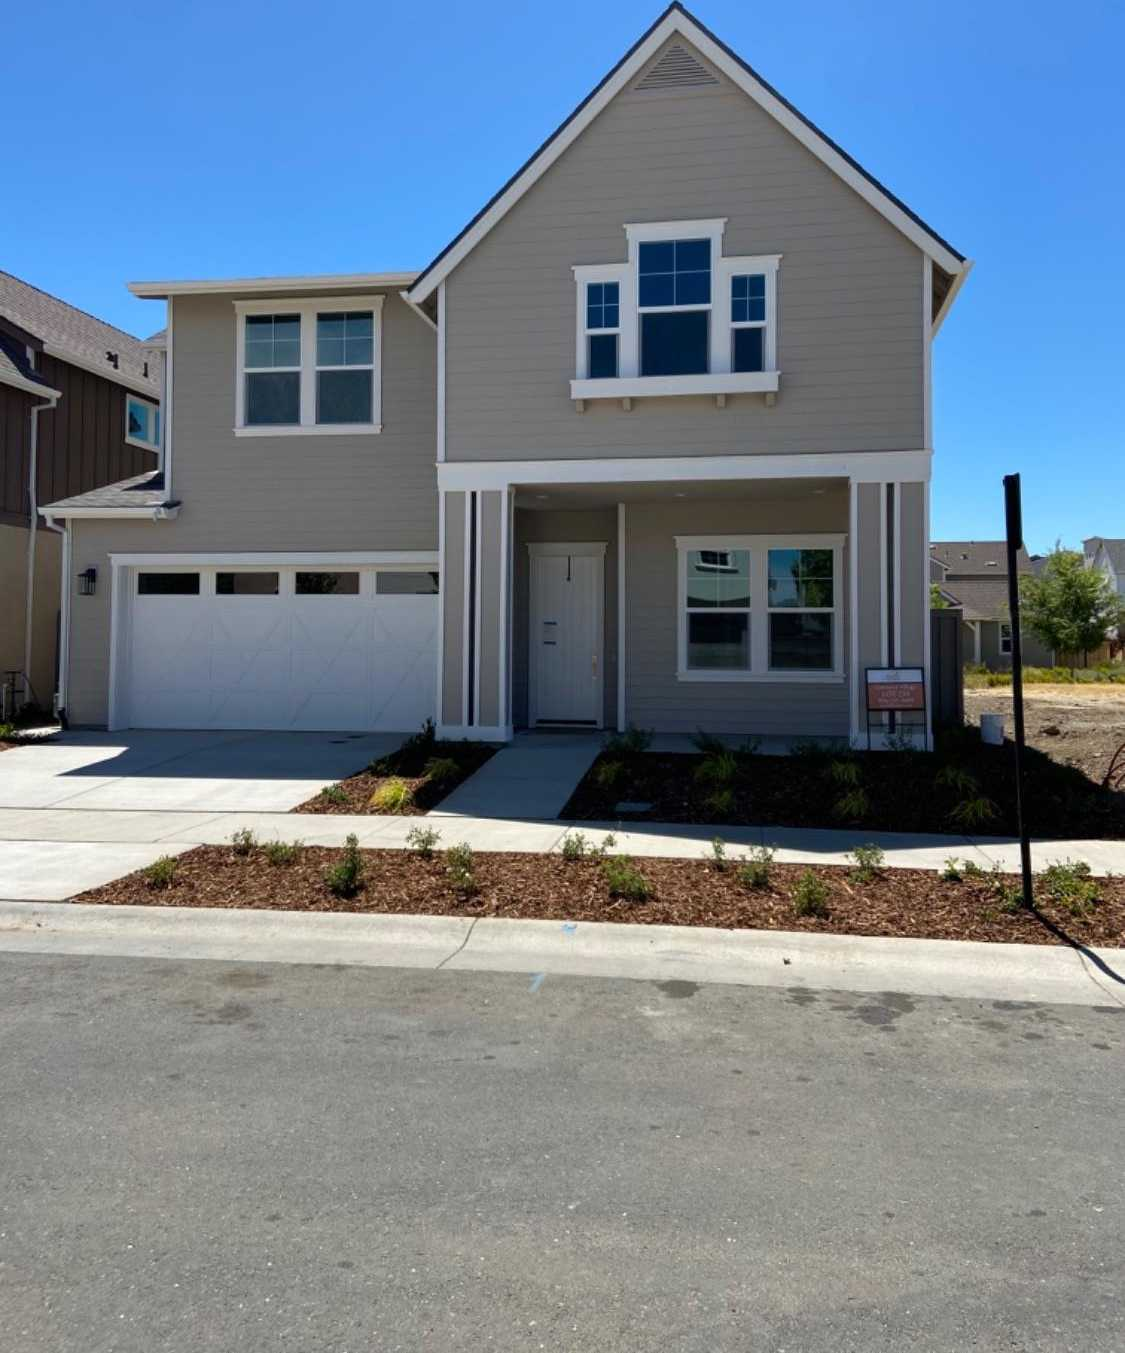 $1,079,900 - 5Br/4Ba -  for Sale in Davis